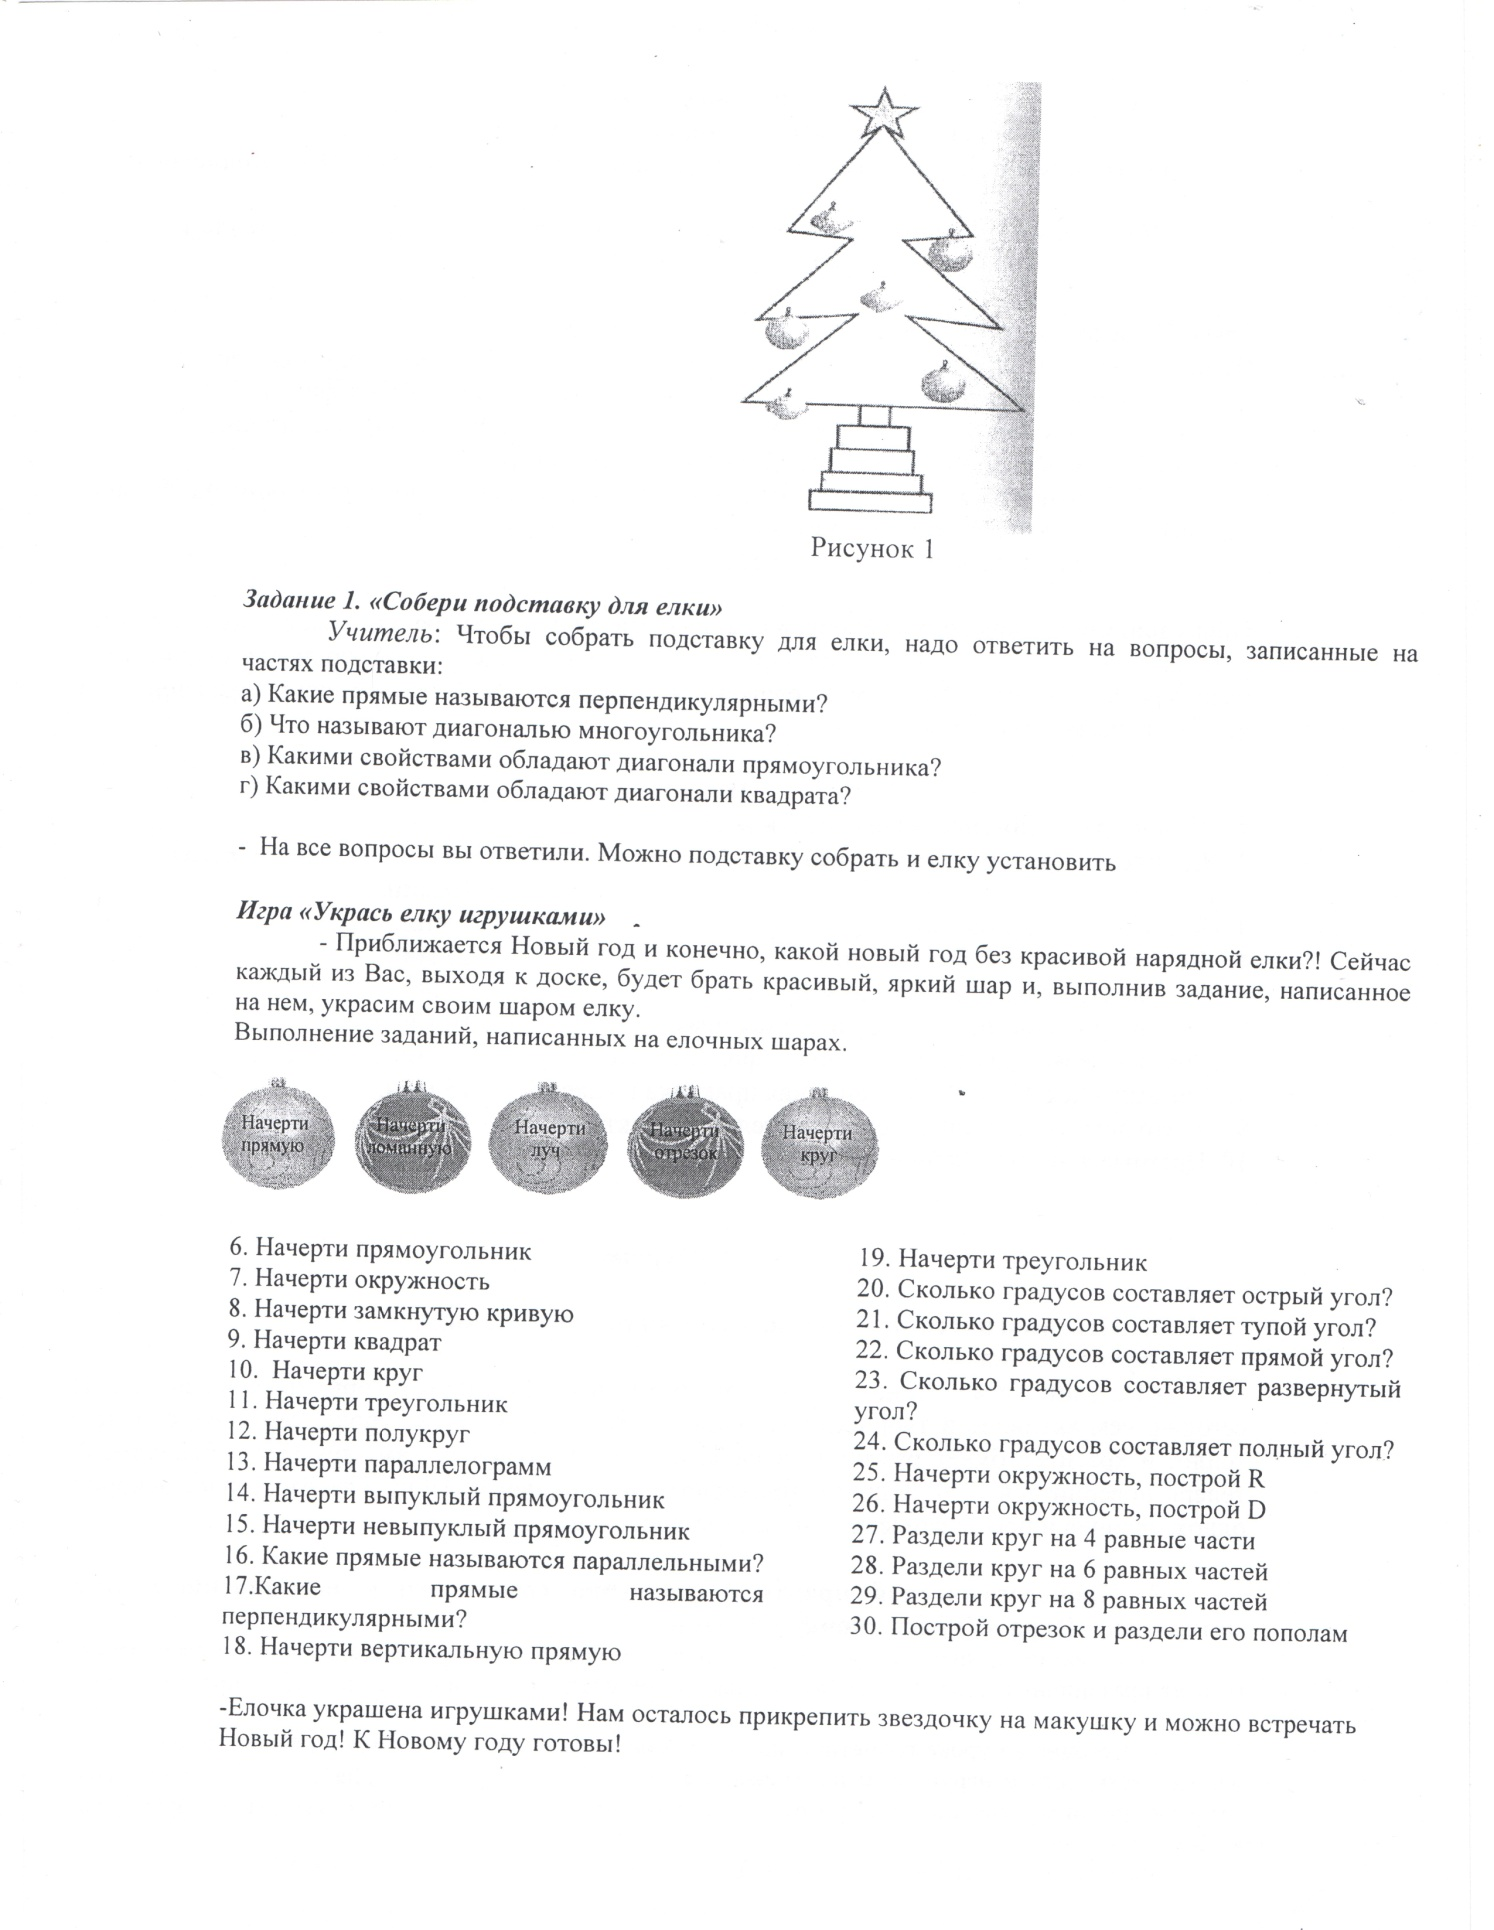 C:\Users\Школа 2\Documents\Scanned Documents\Рисунок (264).jpg